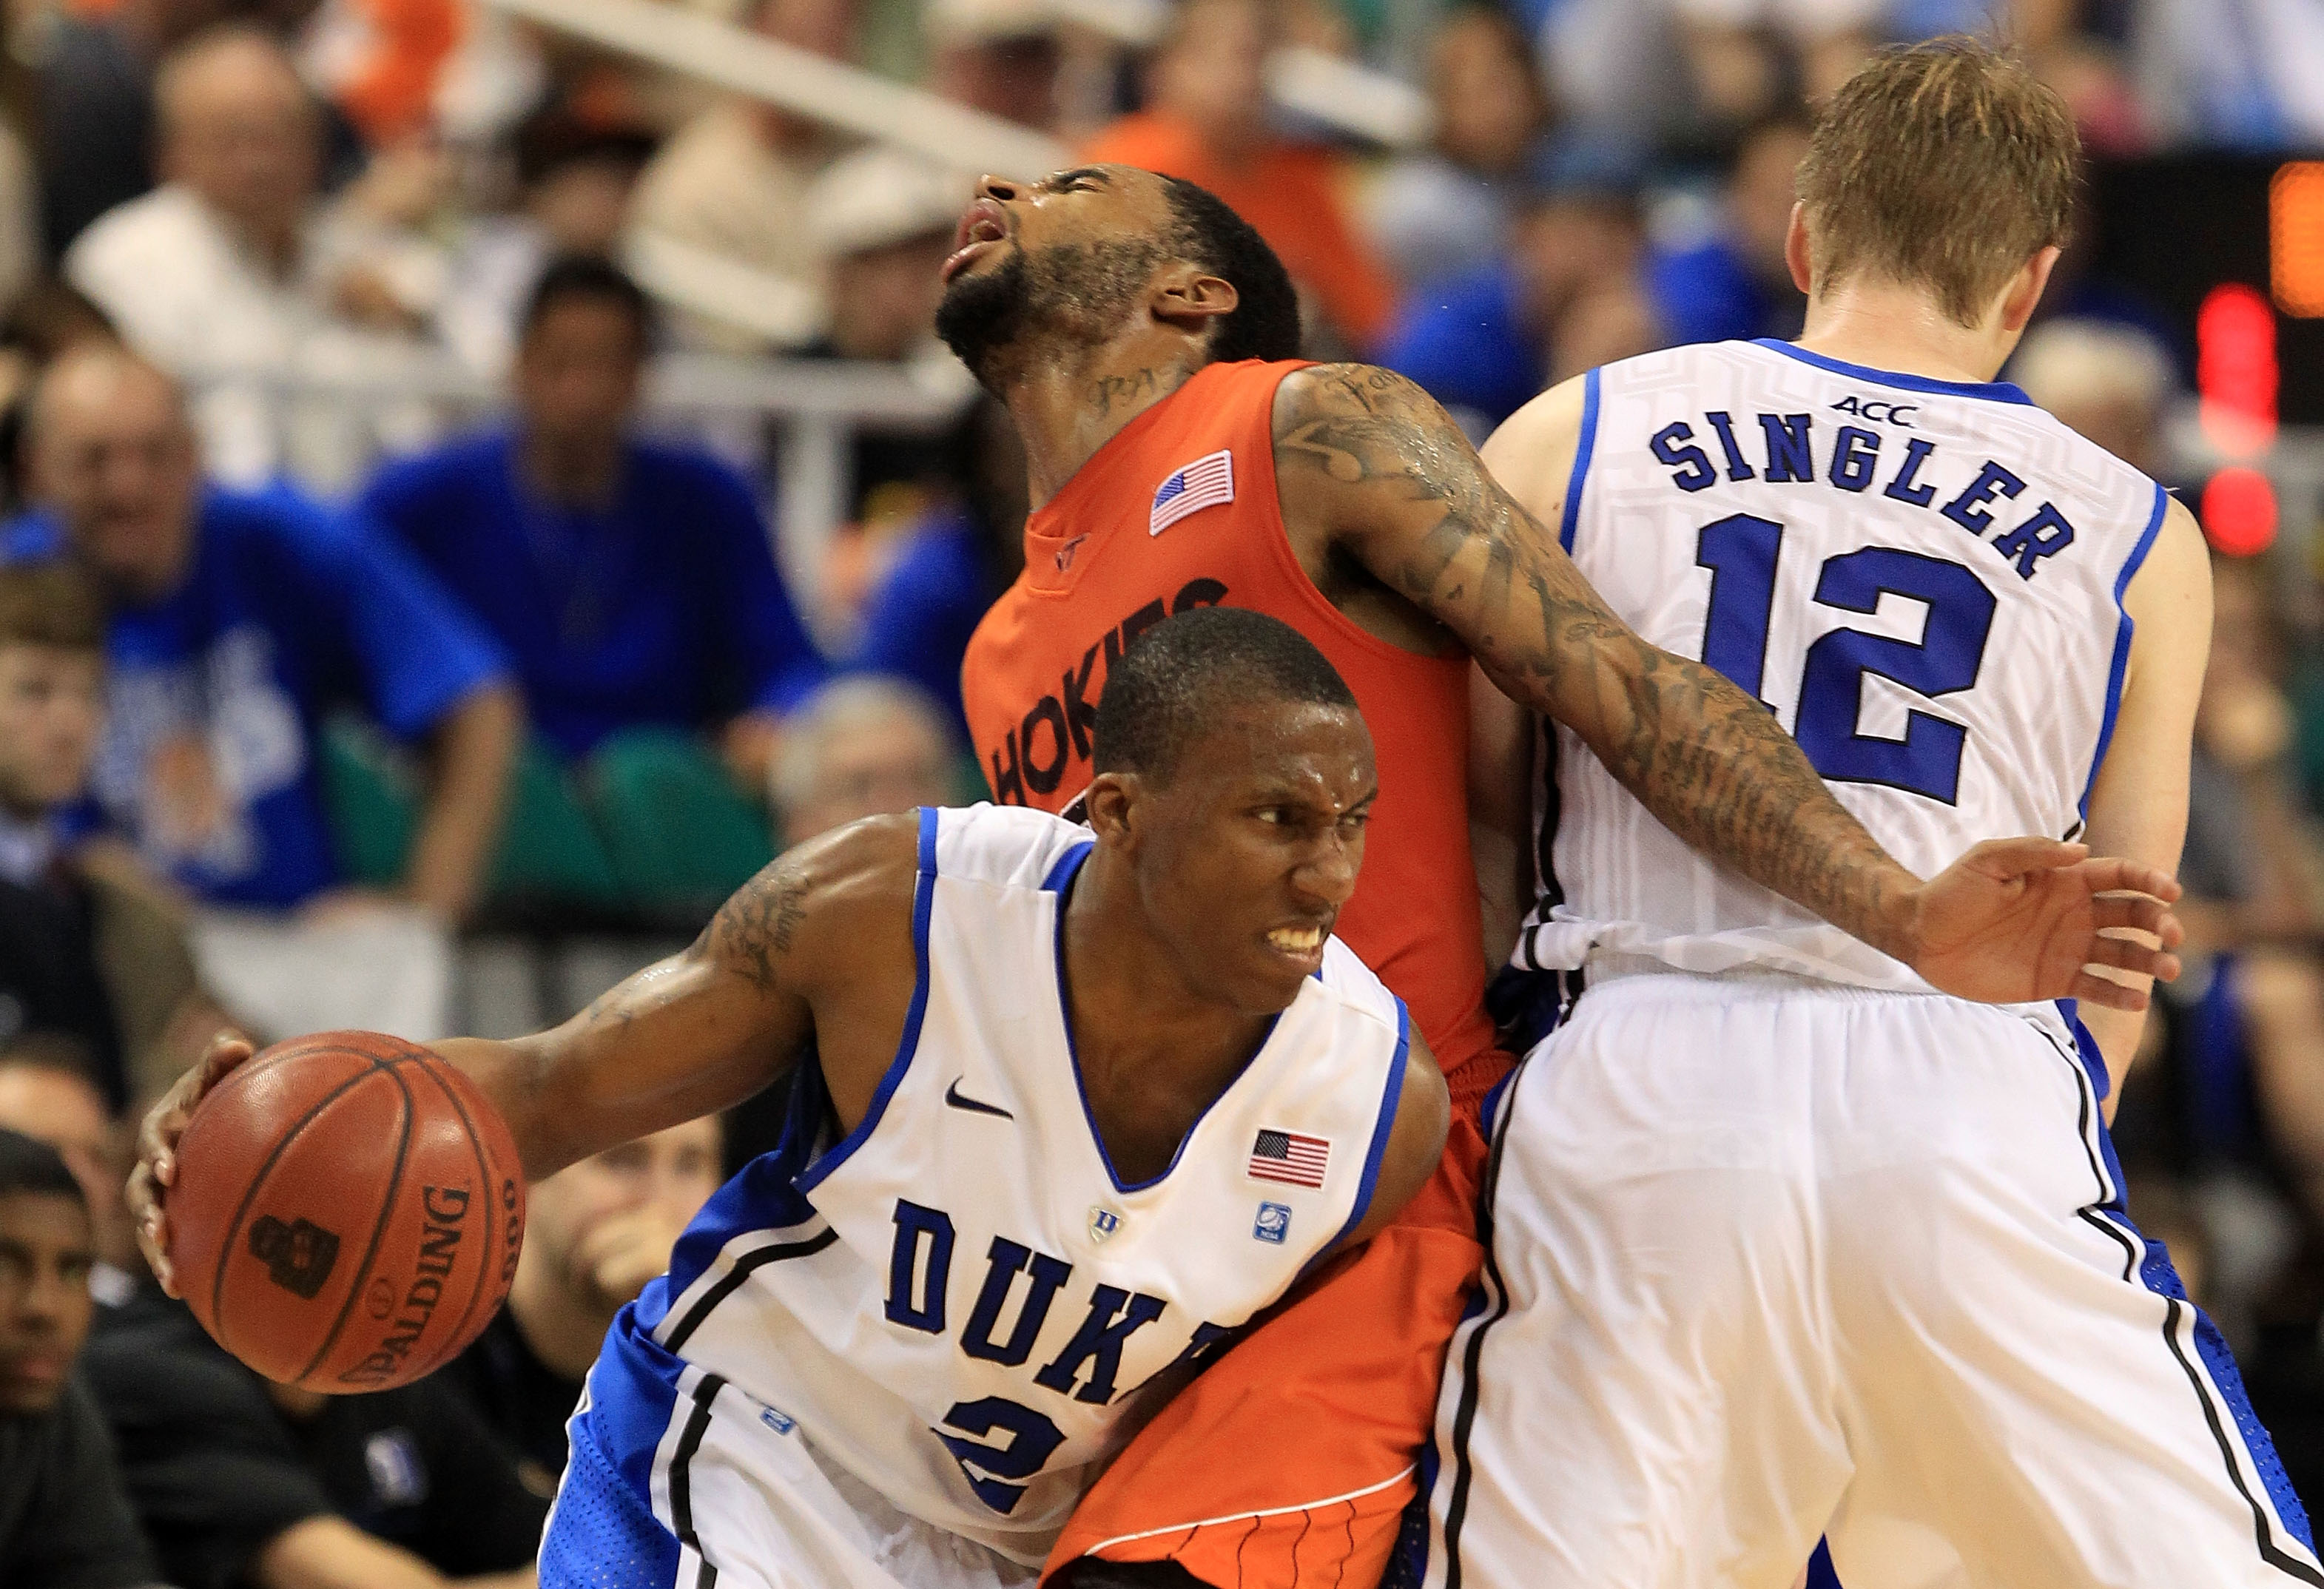 GREENSBORO, NC - MARCH 12:  Malcolm Delaney #23 of the Virginia Tech Hokies is blocked by Kyle Singler #12 of the Duke Blue Devils as teammate Nolan Smith #2 drives the ball during the second half in the semifinals of the 2011 ACC men's basketball tournam